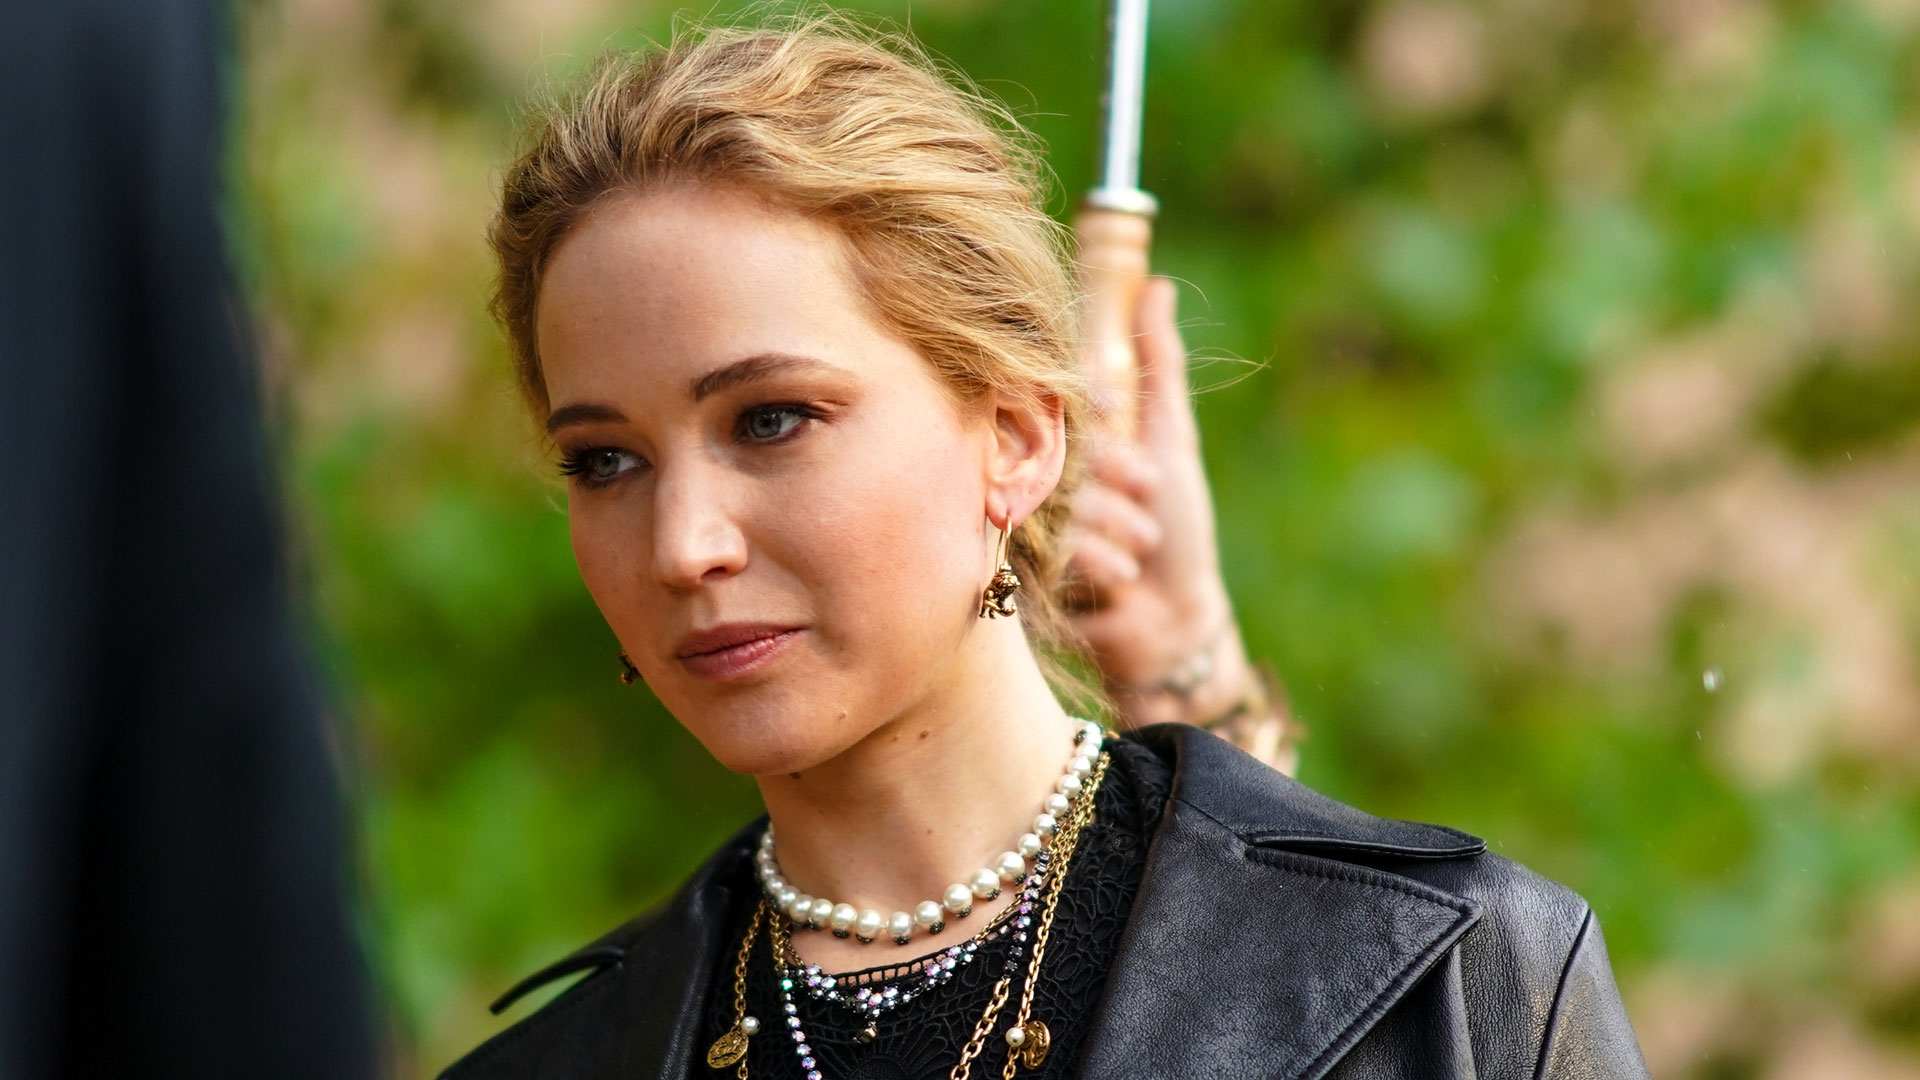 Jennifer Lawrence and Cooke Maroney restrain alleged intruder at their LA home